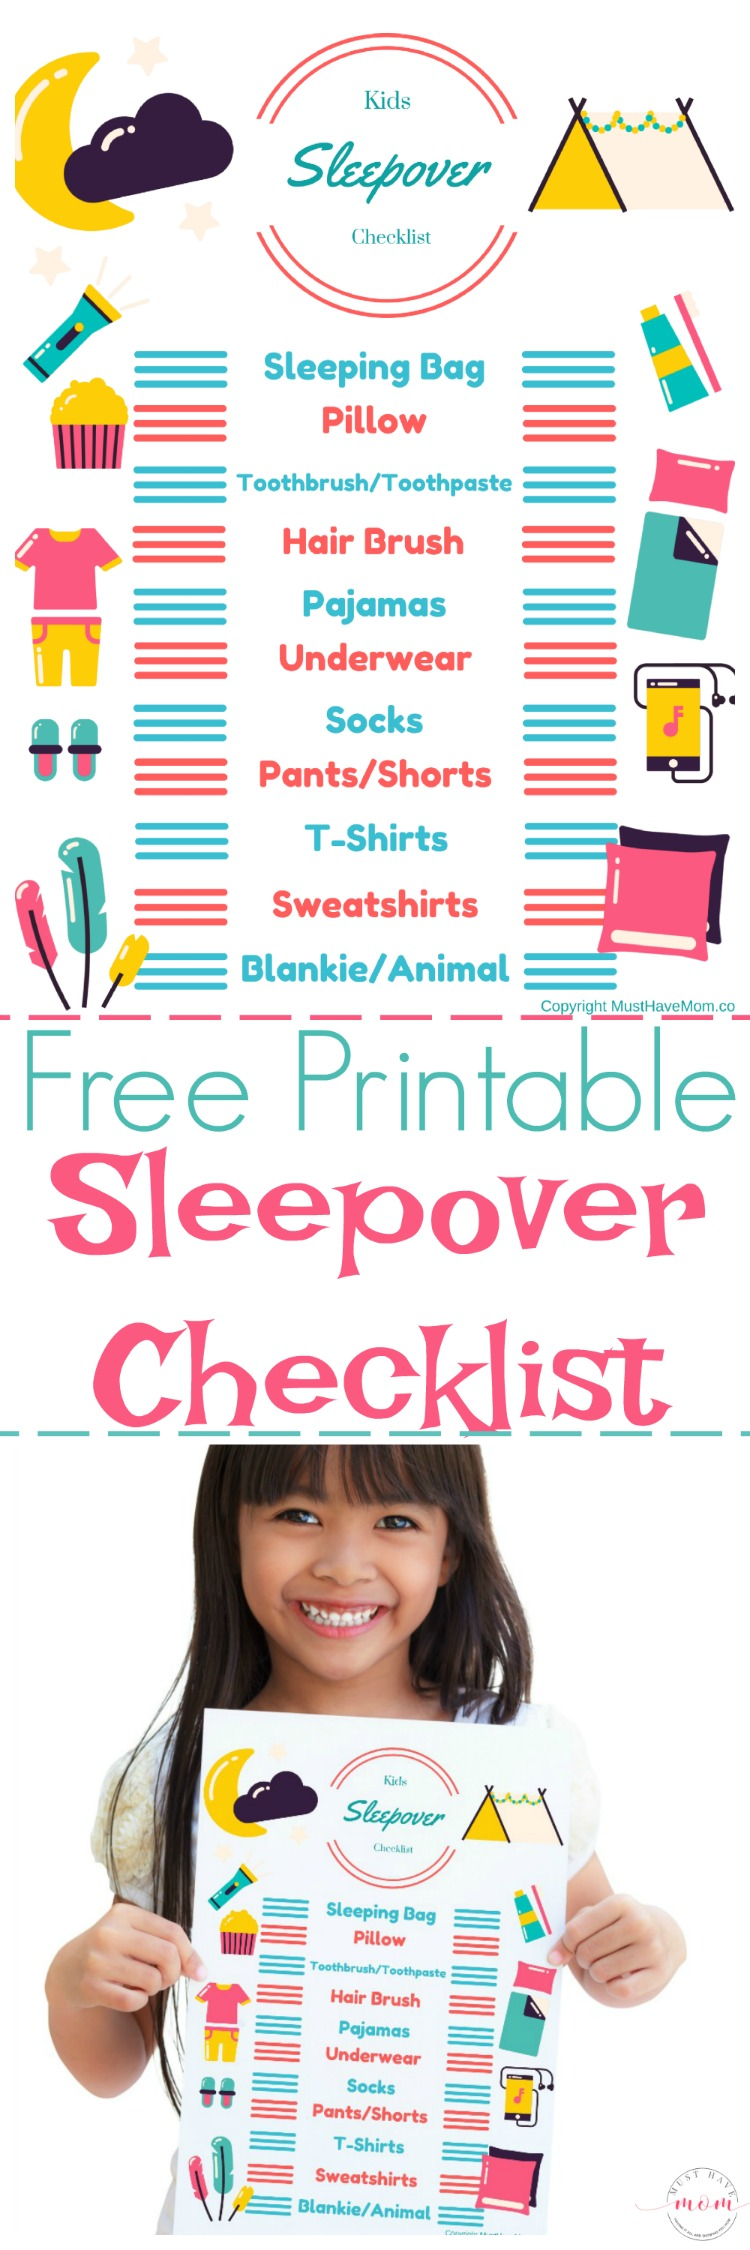 Free printable sleepover checklist for kids! Kids can pack their bags with this sleepover packing list!